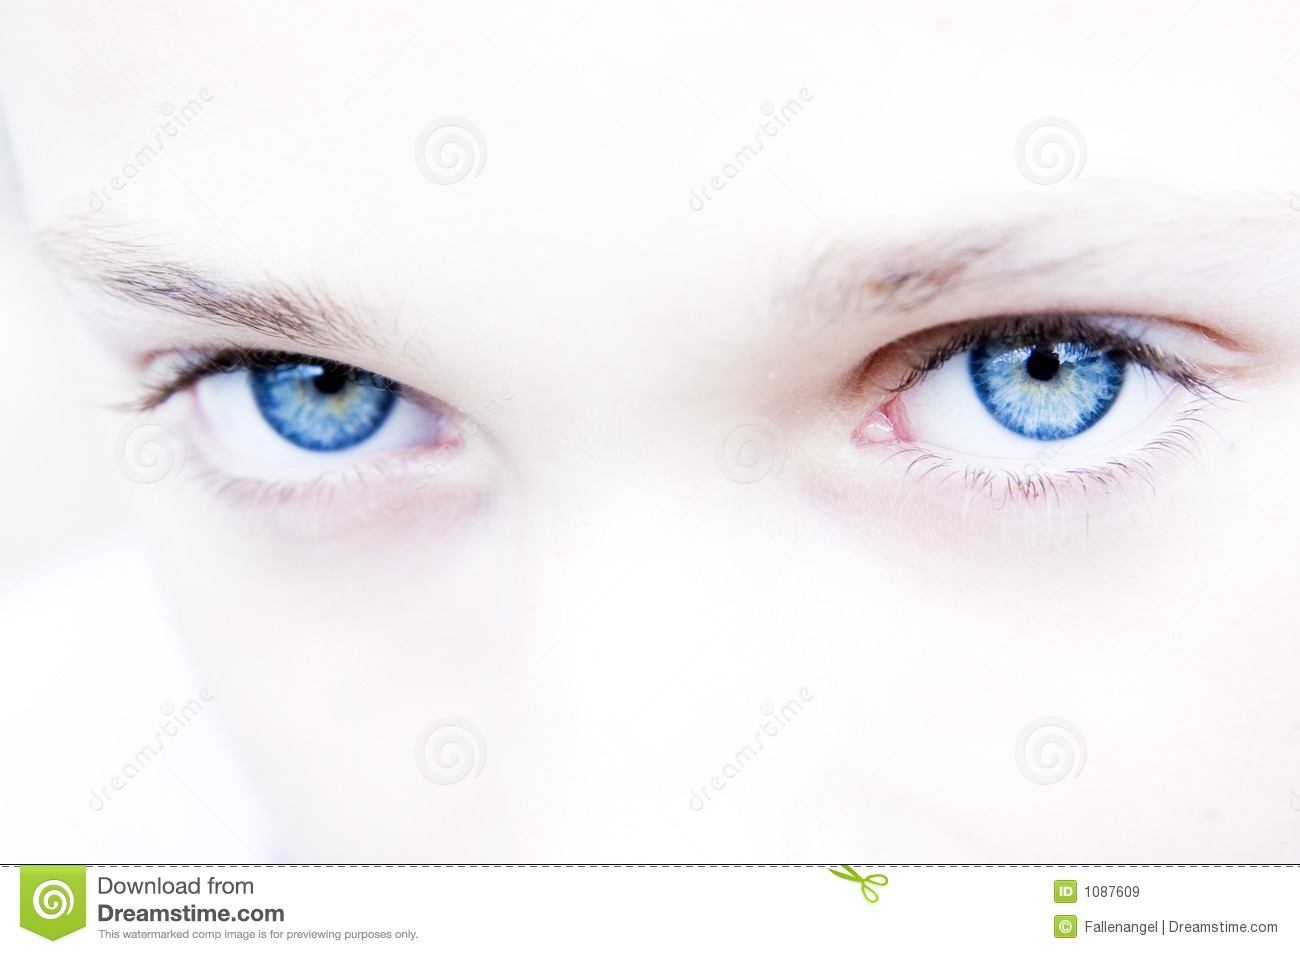 Intense Blue Eyes Royalty Free Stock Images - Image: 1087609